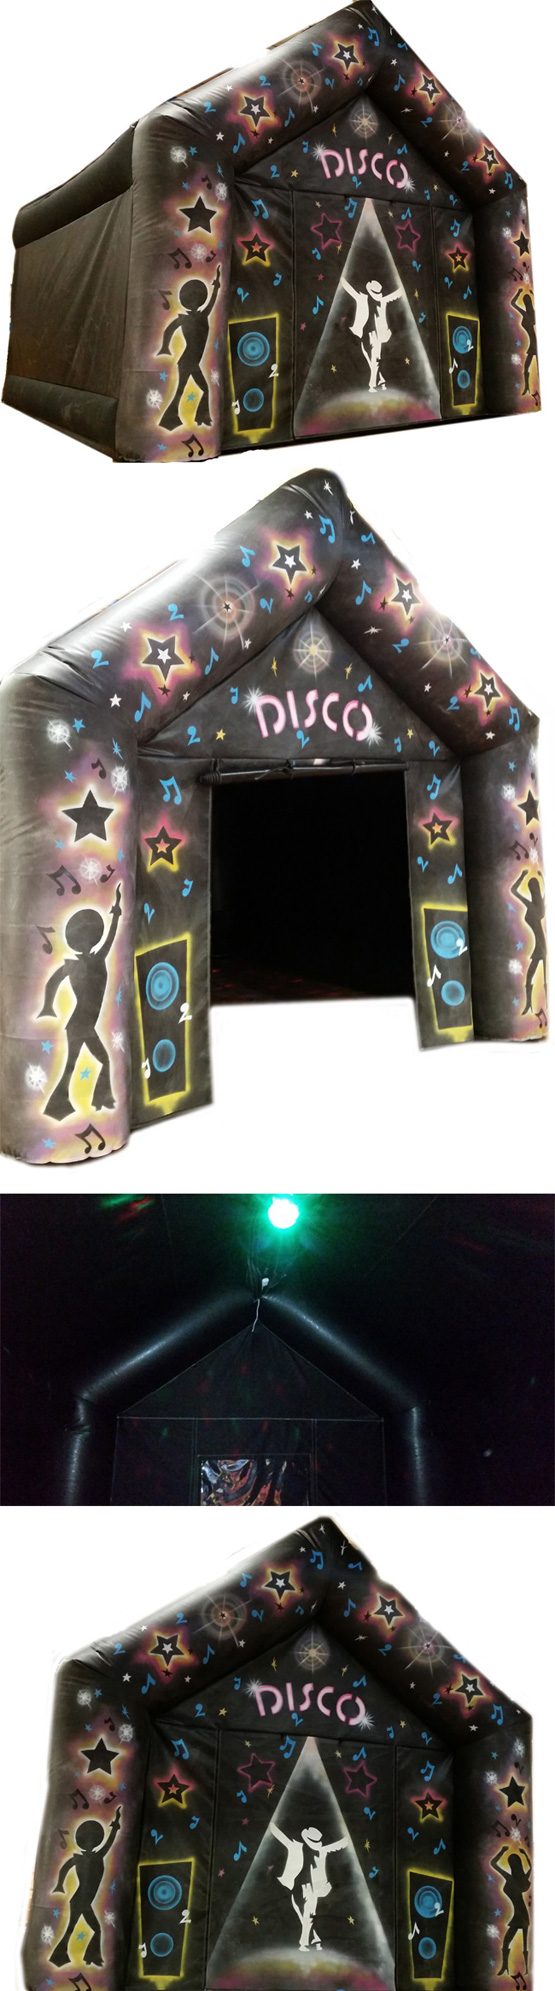 Bouncy Castle Sales - BC348 - Bouncy Inflatable for sale